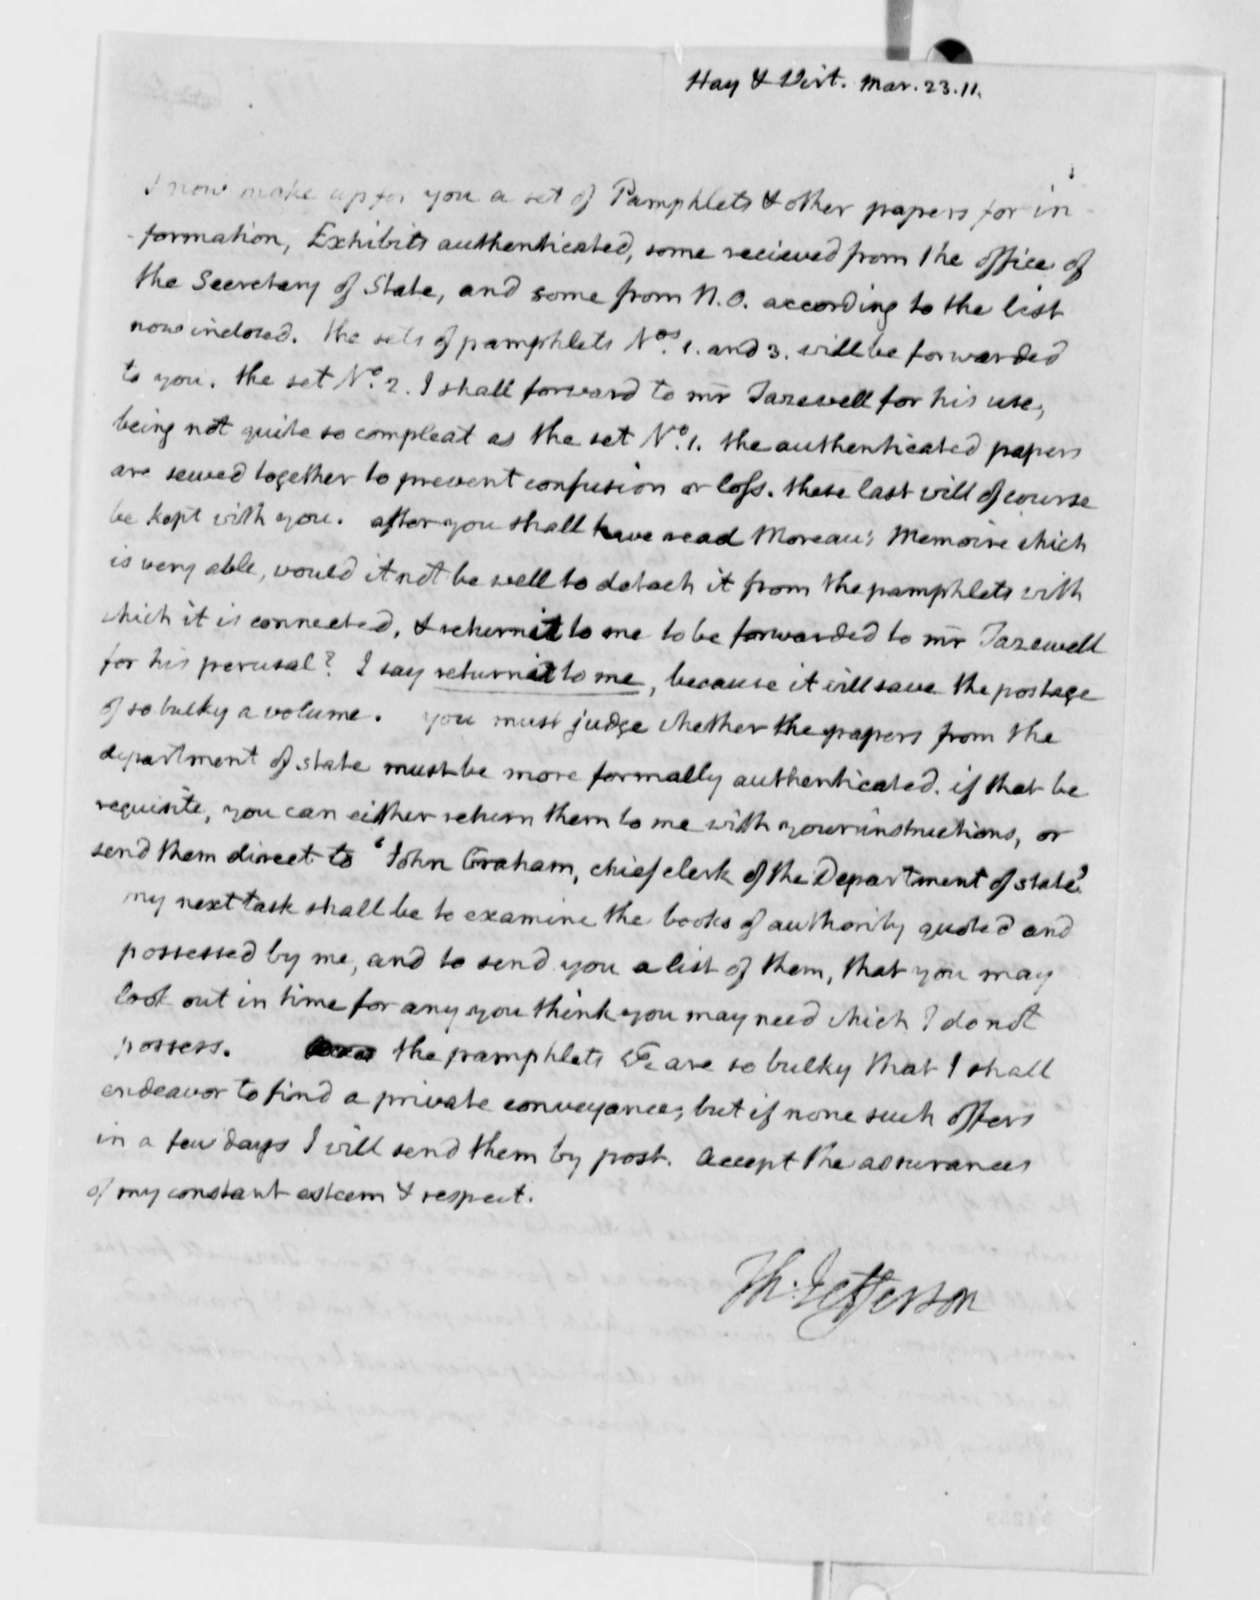 George Hay and William Wirt to Thomas Jefferson, March 23, 1811